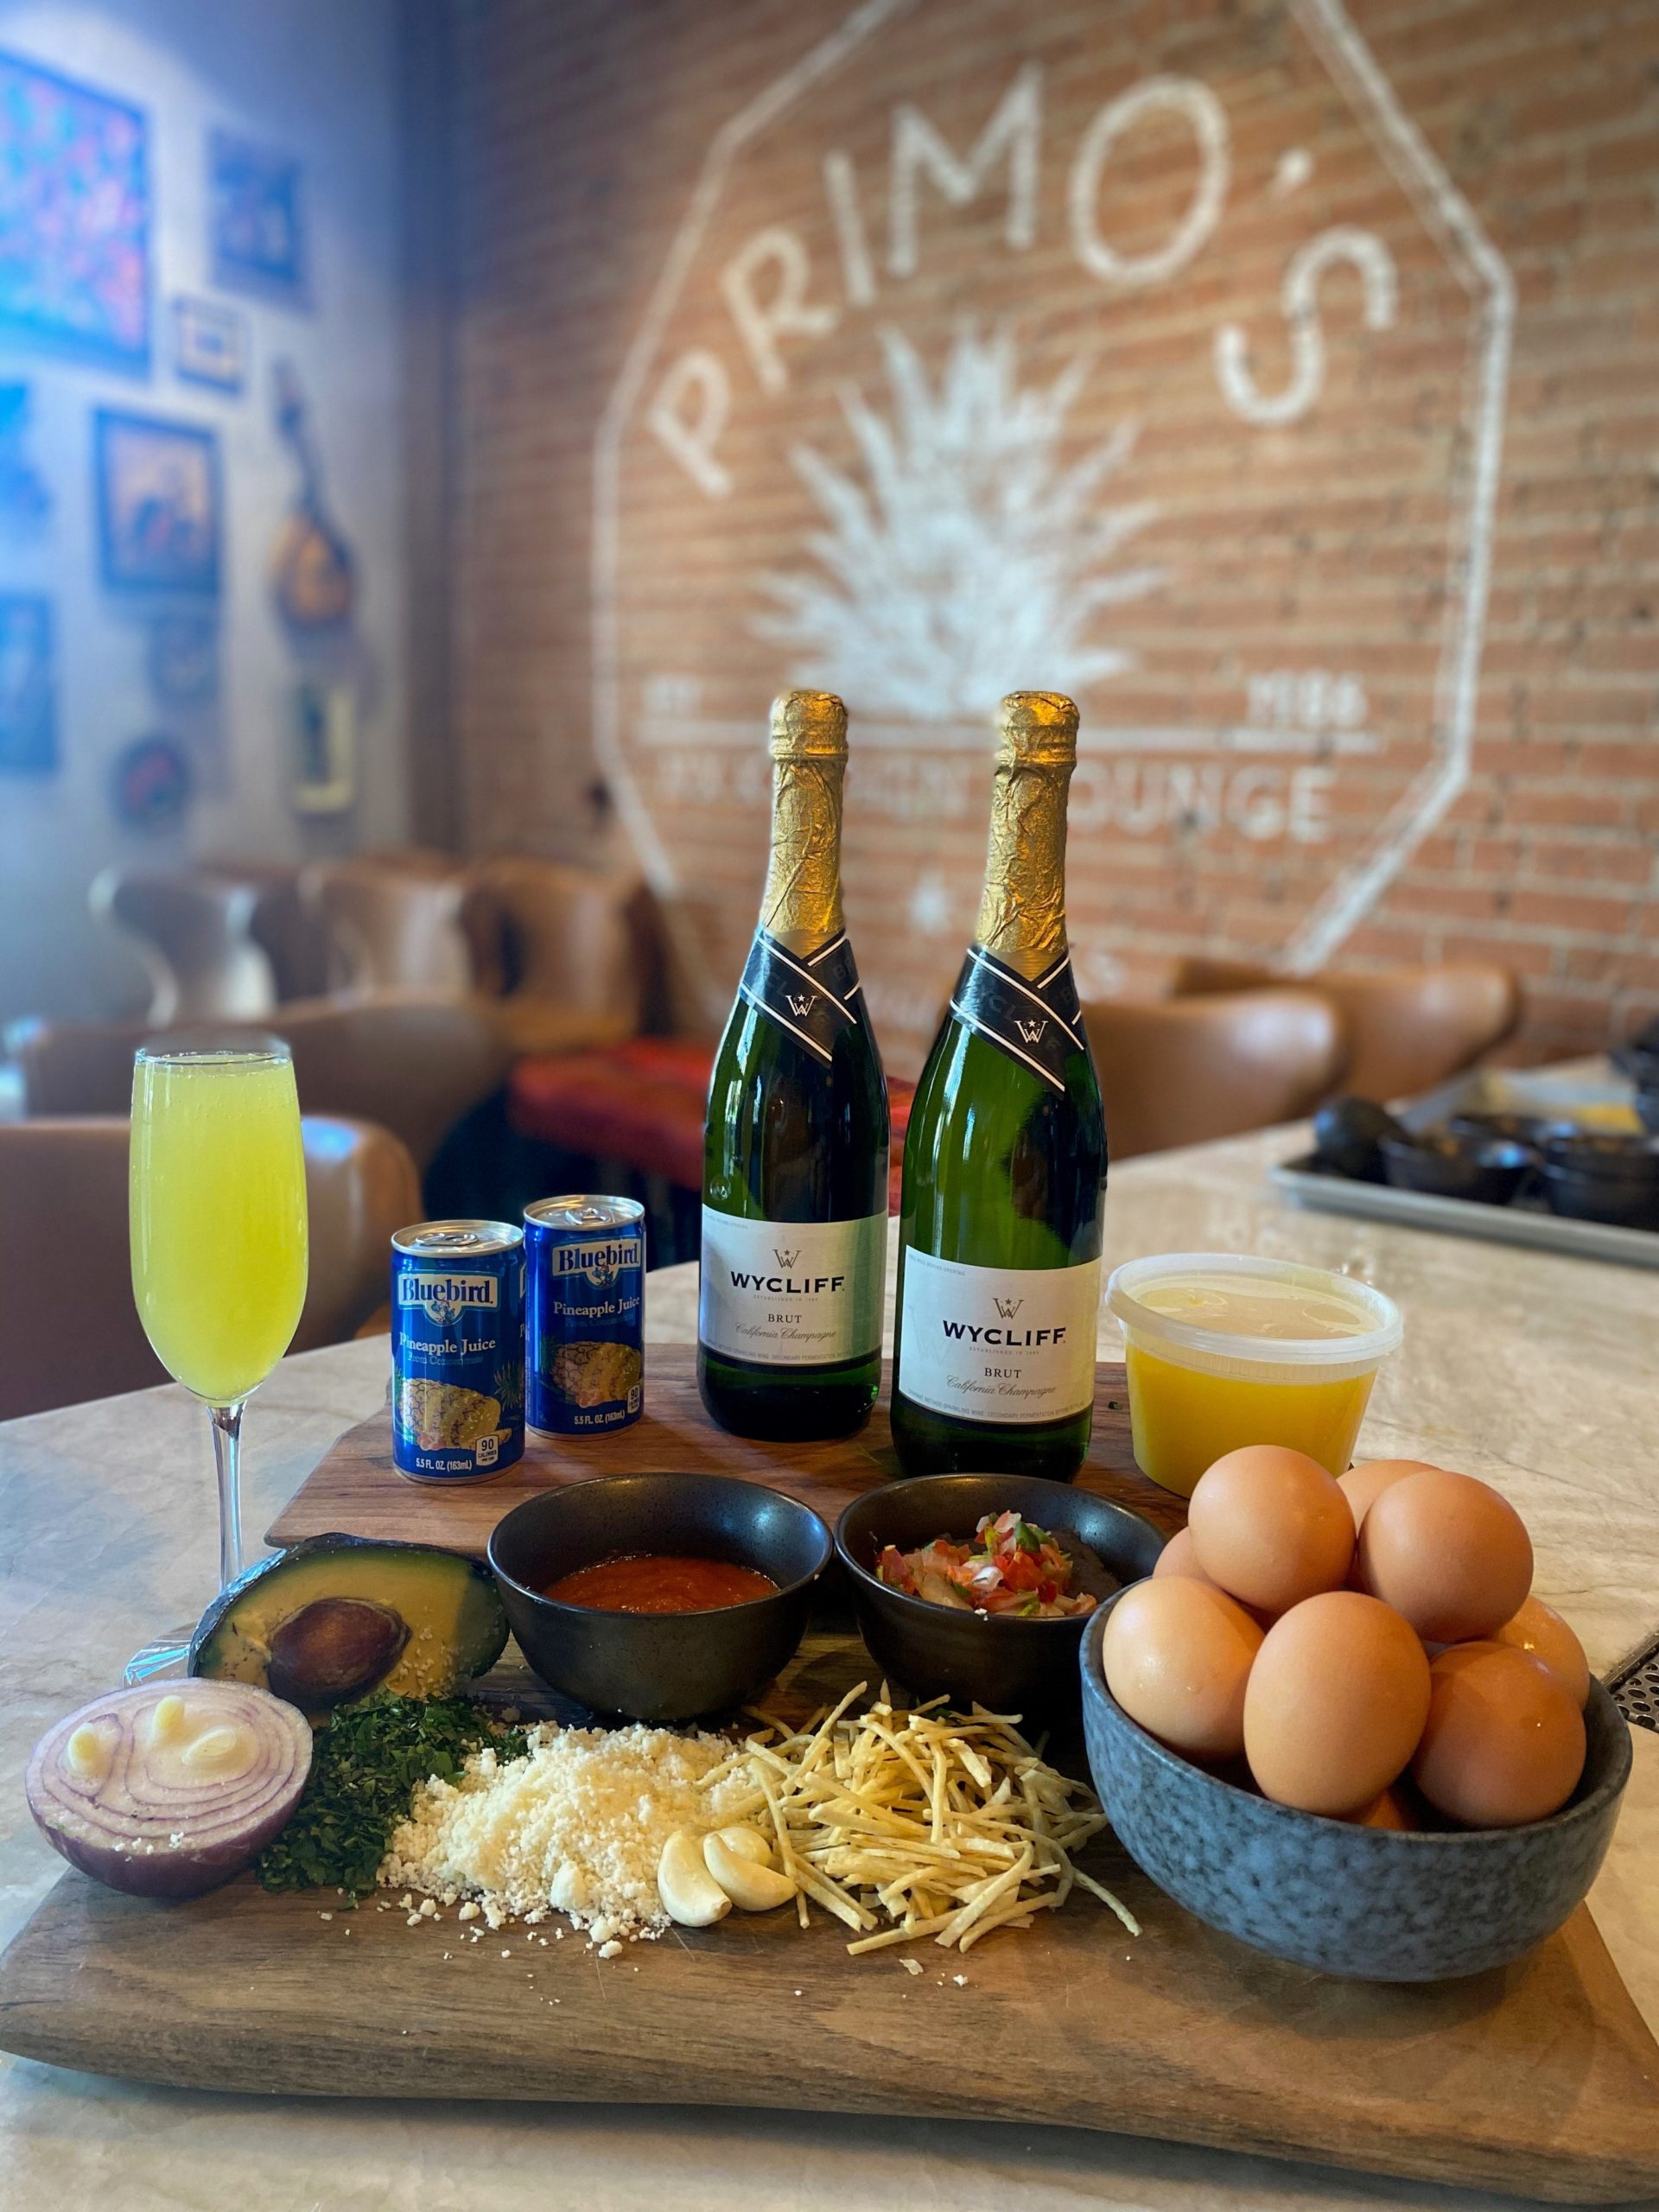 Primo's and Nosh to offer brunch and dinner kits with interactive cooking class